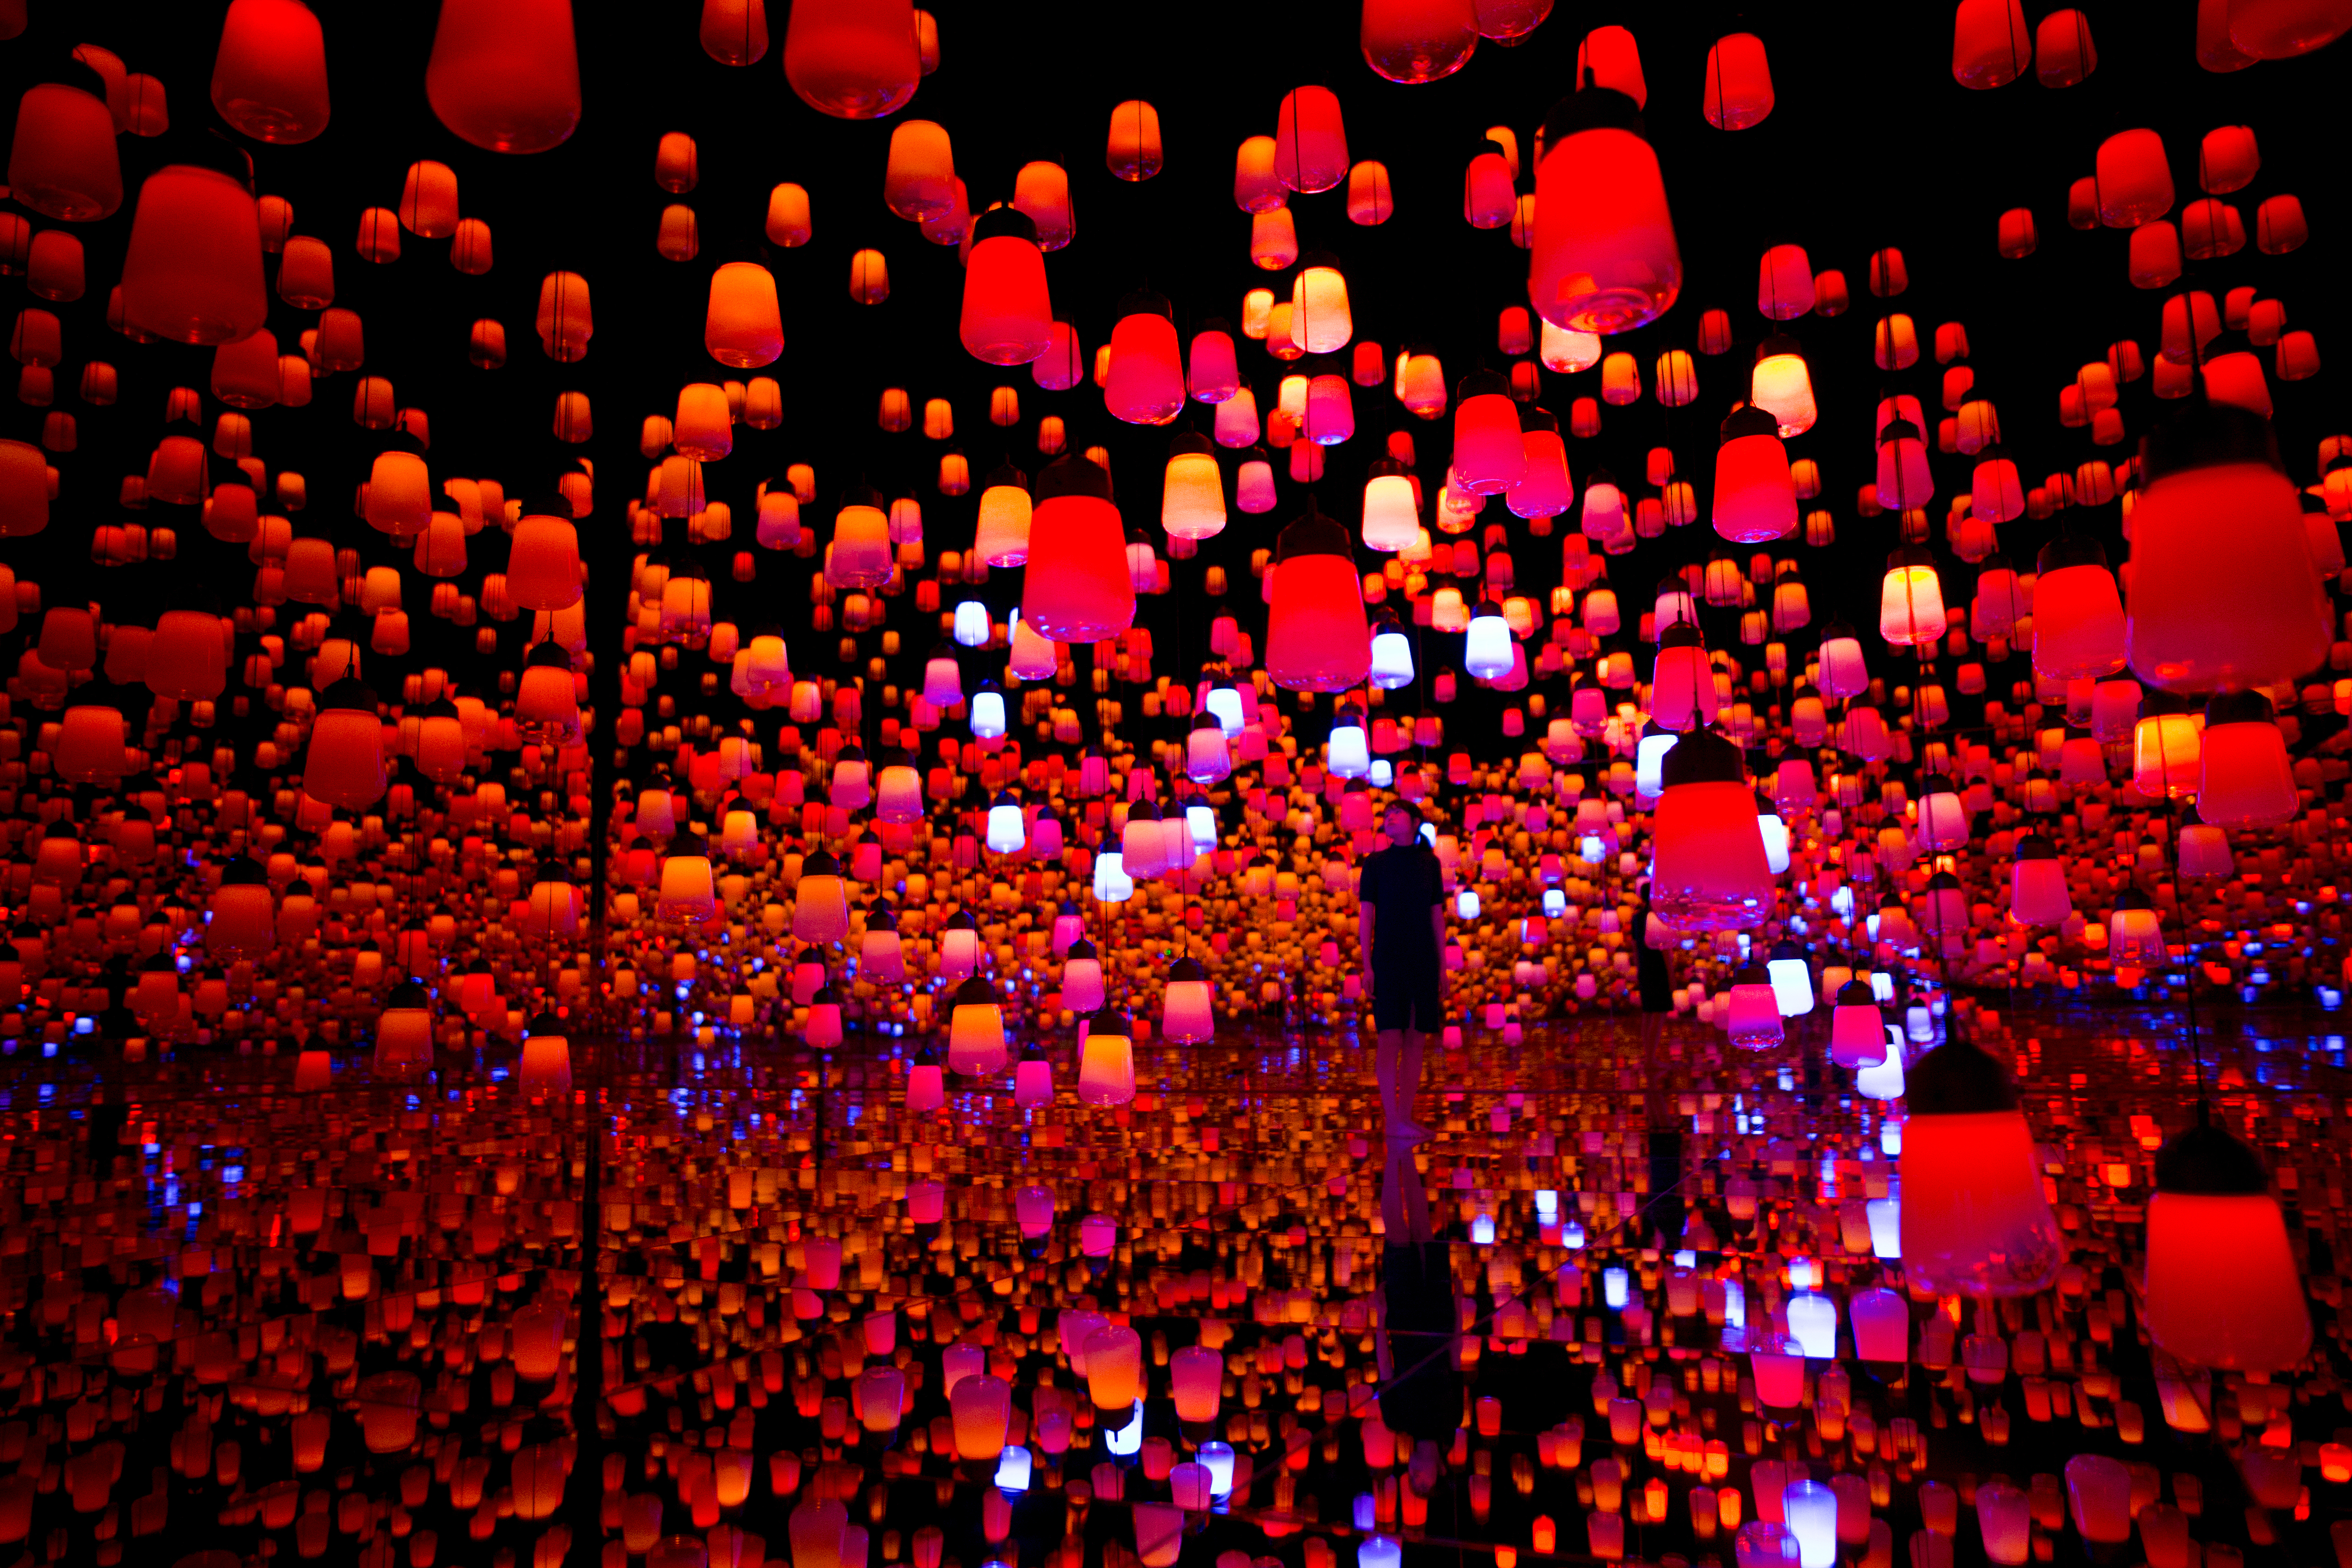 2035_teamLab Borderless_1